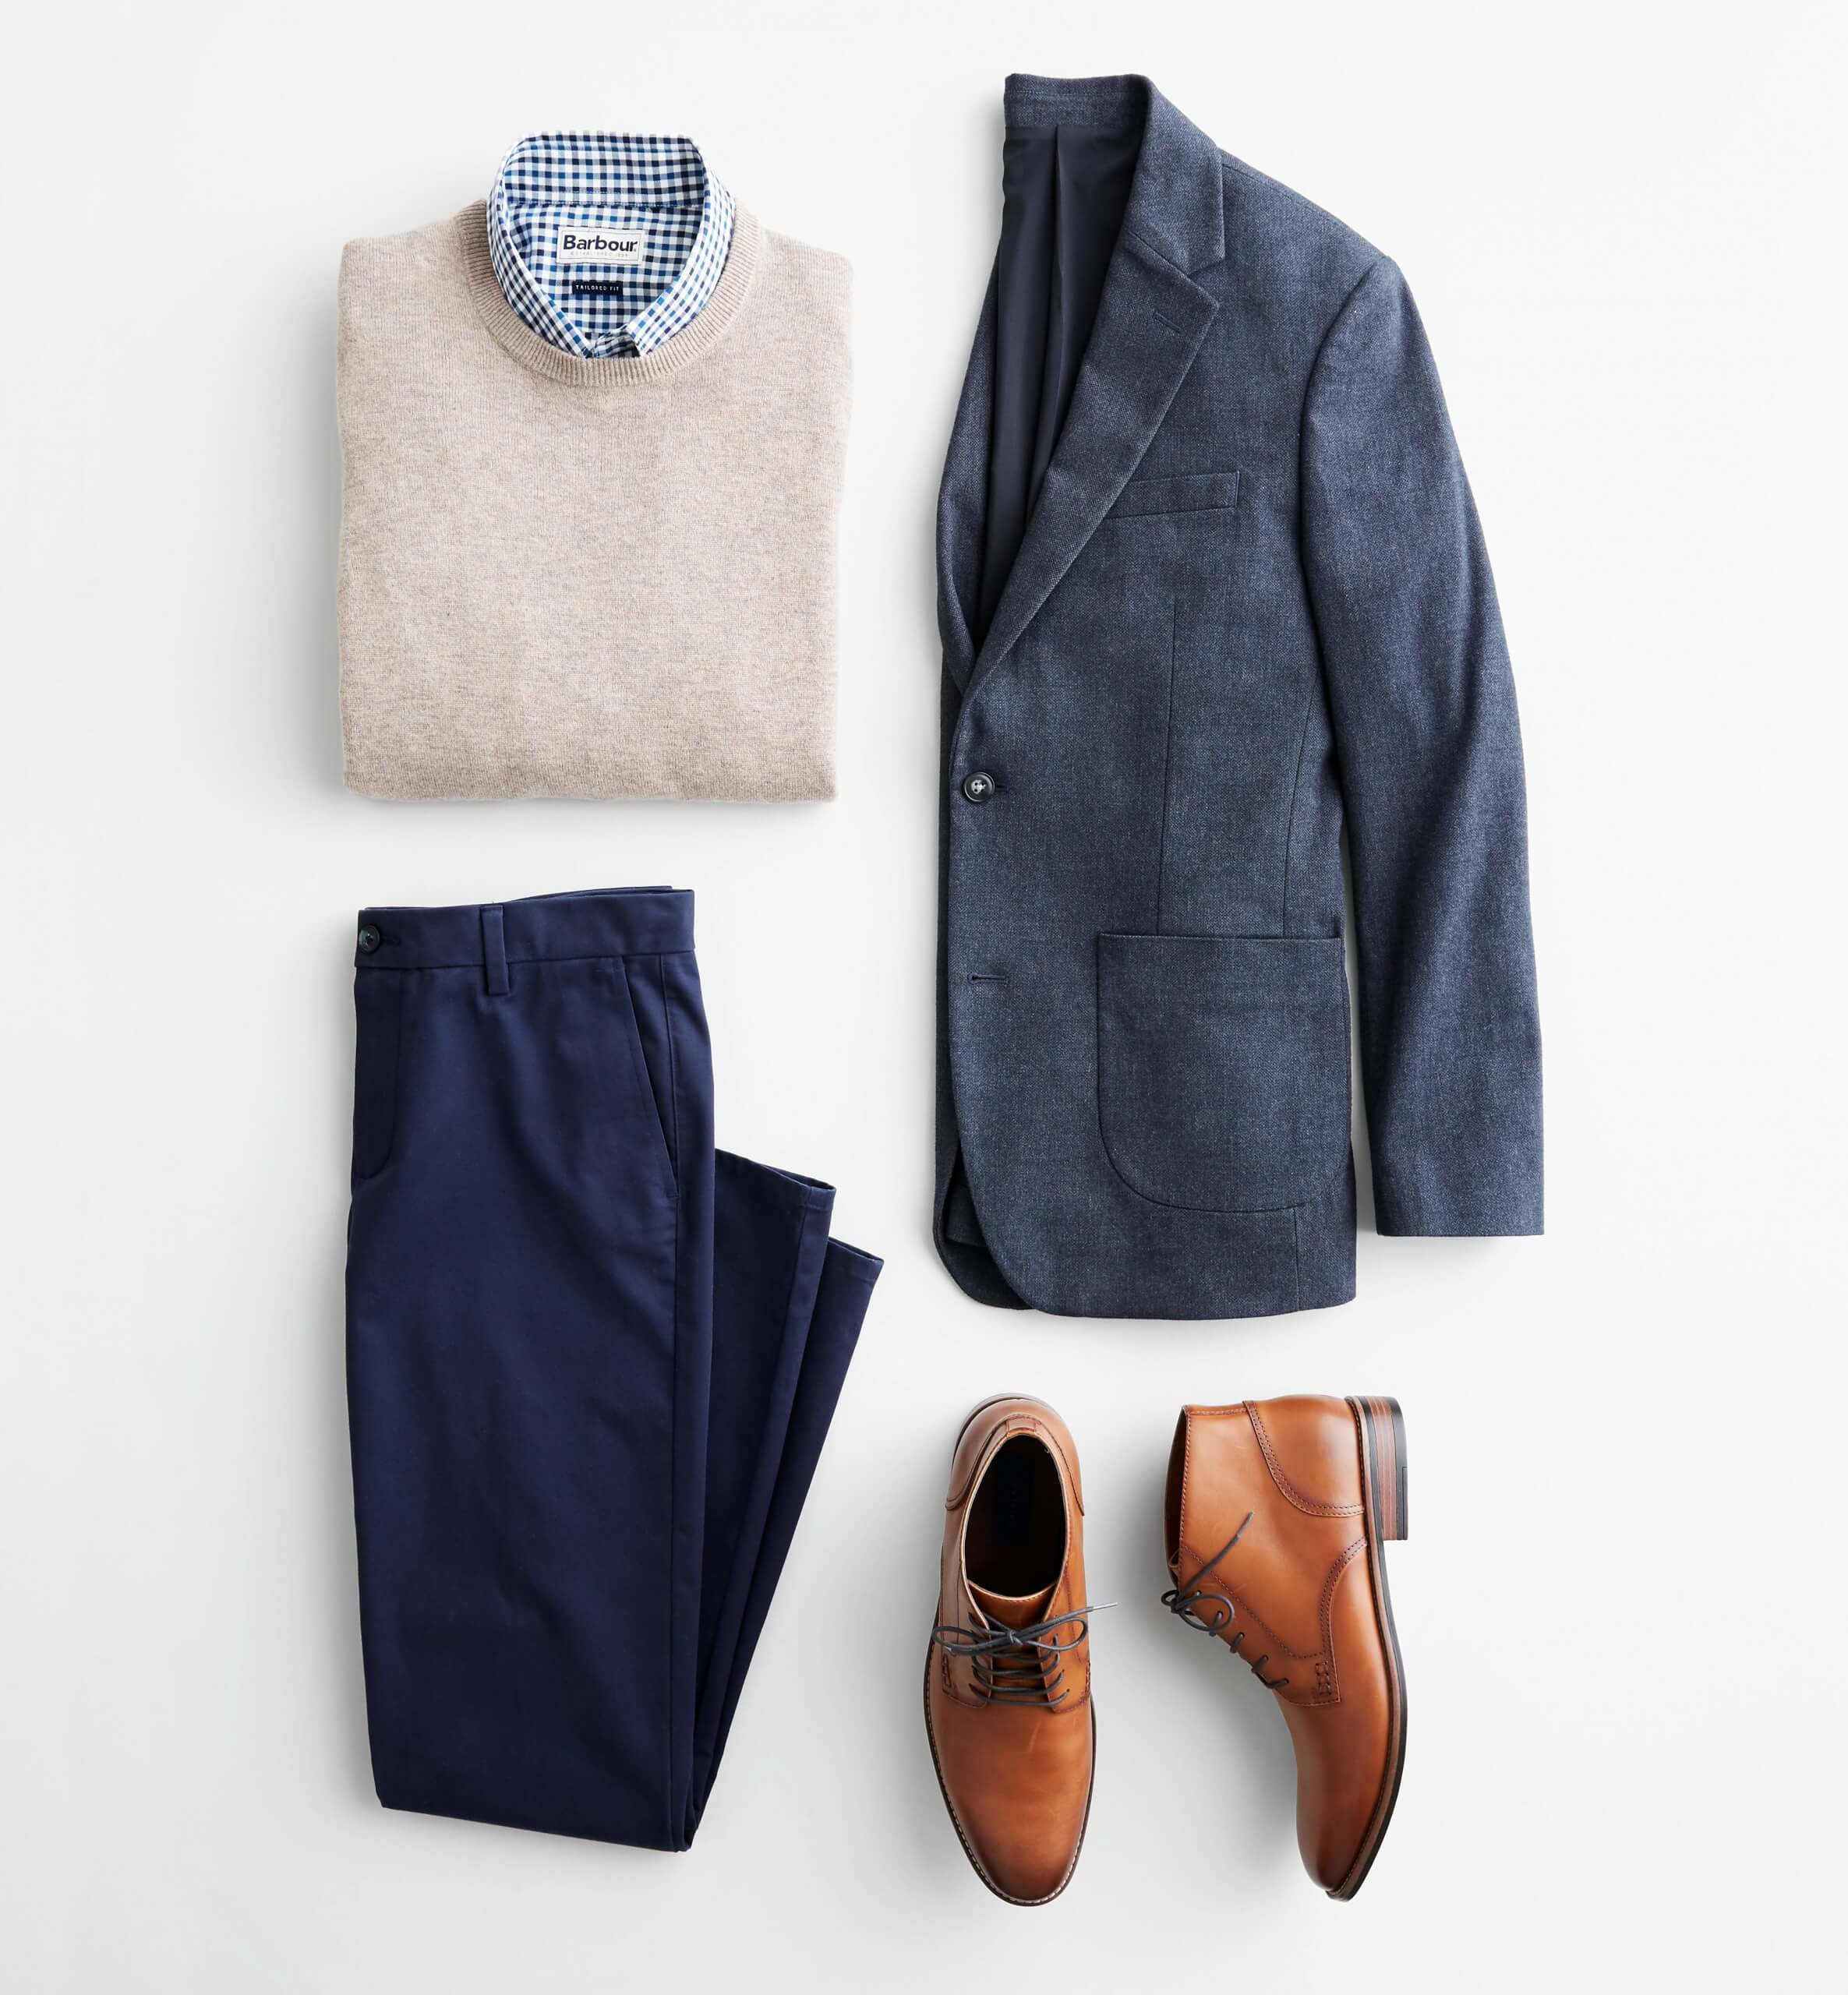 Stitch Fix Men's outfit laydown featuring navy blazer, cream crewneck sweater over blue collared shirt, navy trousers and brown leather chukkas.